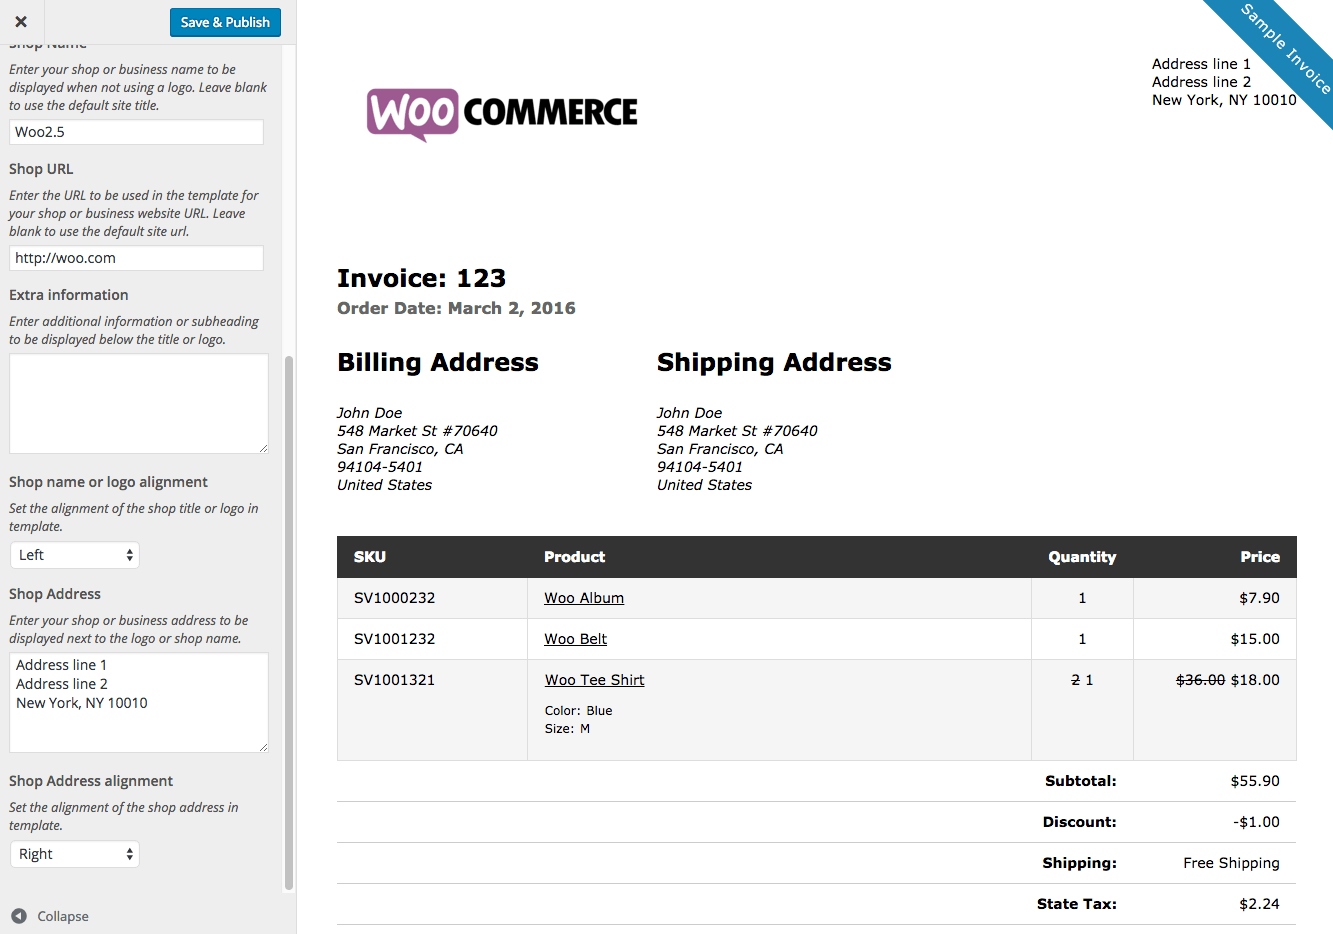 Weverducreus  Mesmerizing Print Invoices Amp Packing Lists  Woocommerce With Inspiring Woocommerce Print Invoices  Packing Lists Customizer With Attractive Late Payment Of Invoices Also Sample Purchase Invoice In Addition Free Small Business Invoice Software And Payment Terms For Invoices As Well As Spreadsheet Invoice Additionally Invoice Validation From Woocommercecom With Weverducreus  Inspiring Print Invoices Amp Packing Lists  Woocommerce With Attractive Woocommerce Print Invoices  Packing Lists Customizer And Mesmerizing Late Payment Of Invoices Also Sample Purchase Invoice In Addition Free Small Business Invoice Software From Woocommercecom